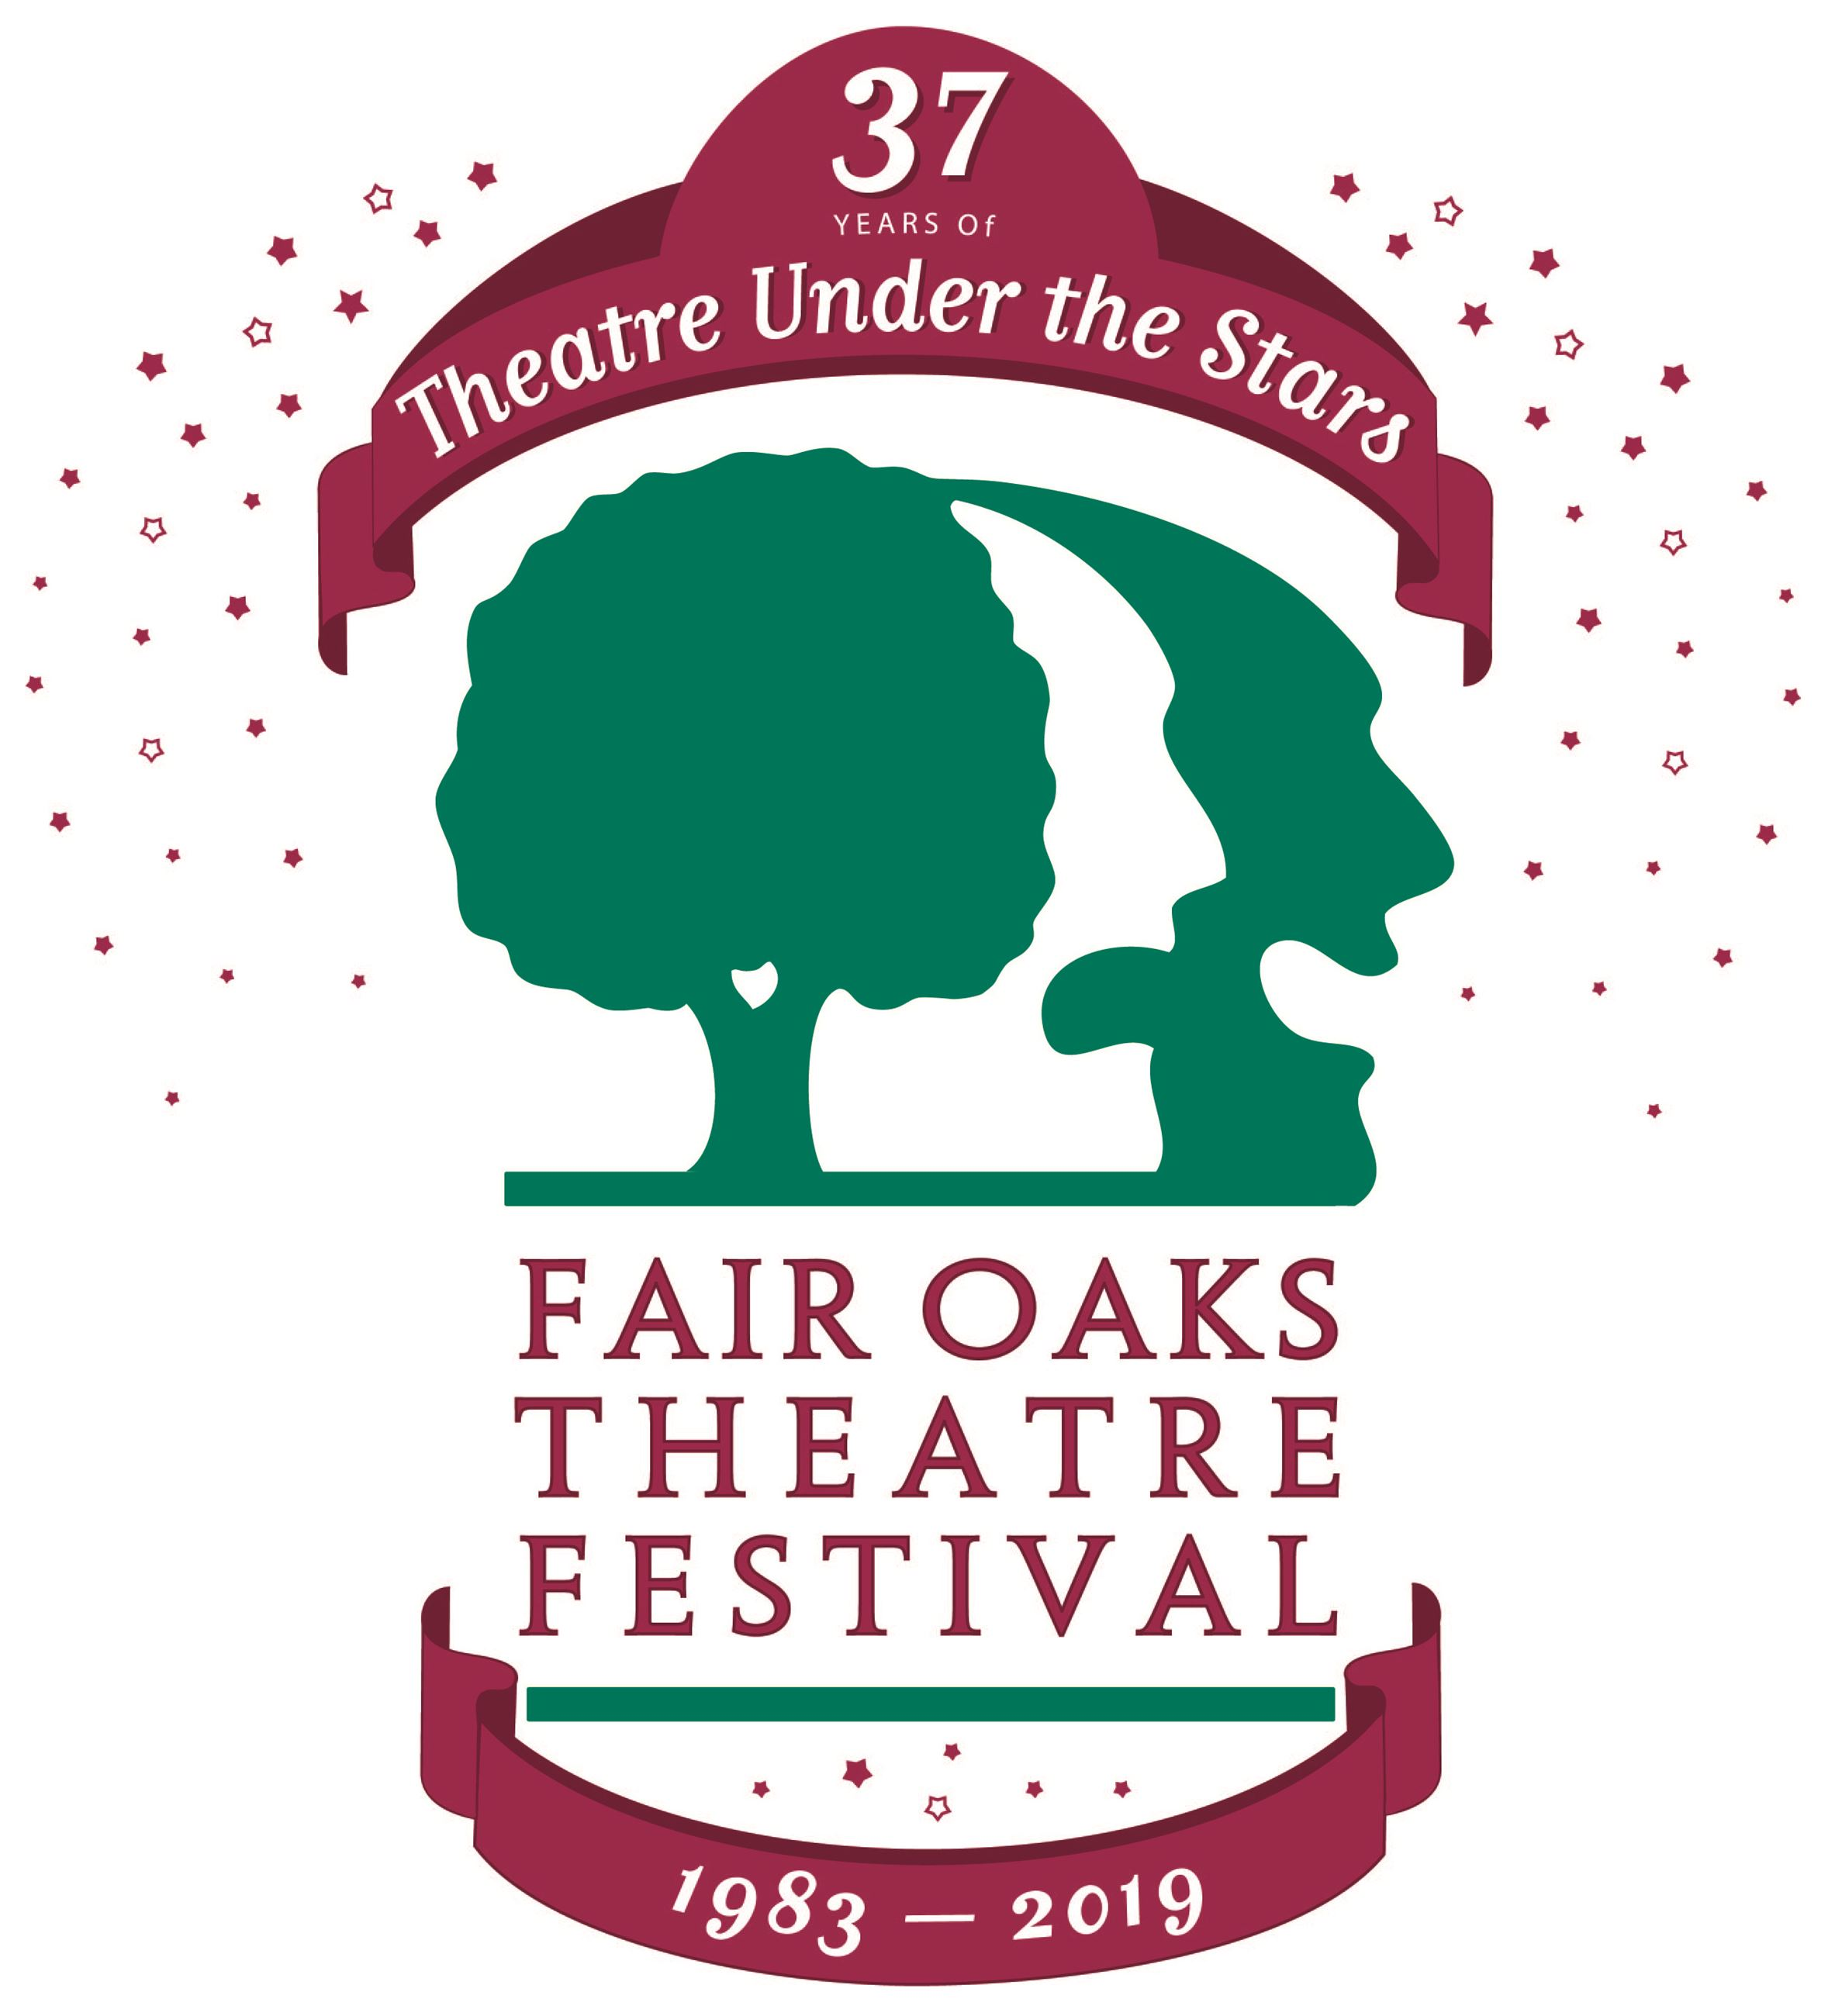 Fair Oaks Theatre Festival logo